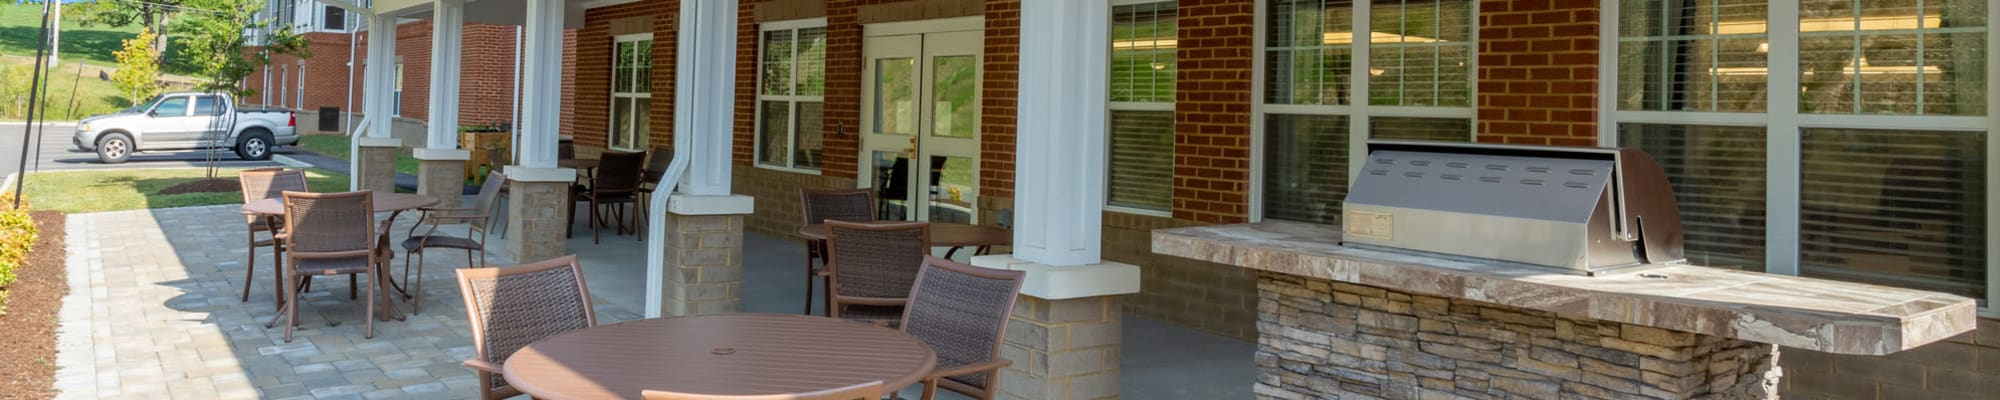 Reviews of The Harmony Collection at Roanoke - Assisted Living in Roanoke, Virginia